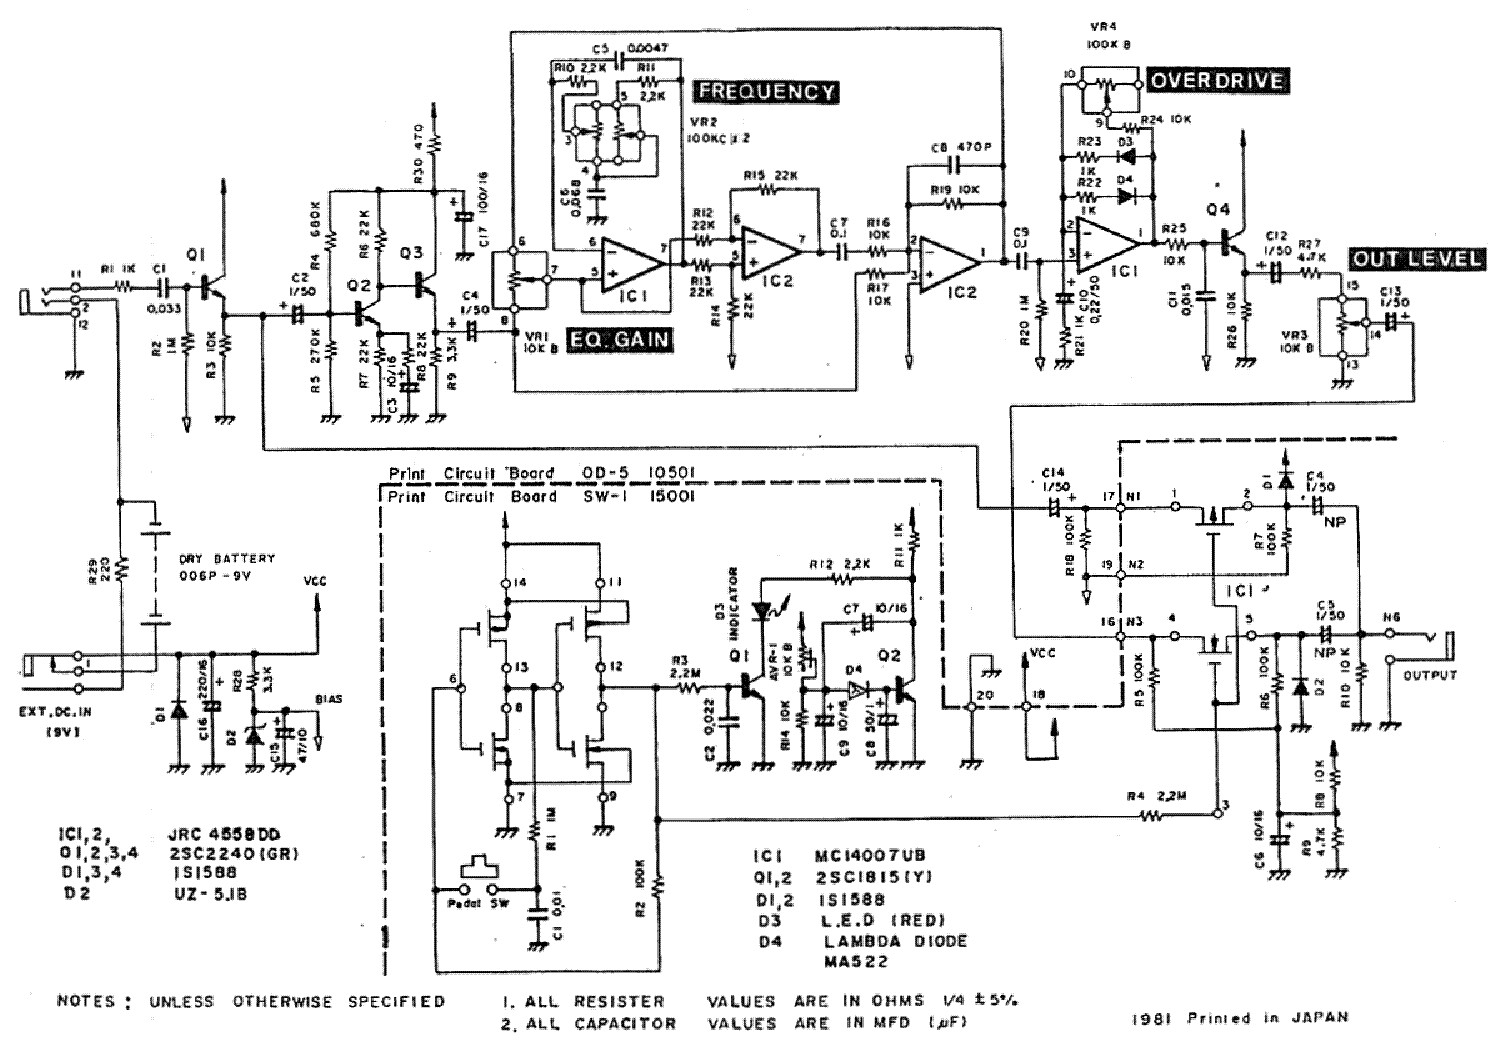 How to make a wiring diagram unique wiring diagram image pearl overdrive od05 guitar effects schematics service manual guitar effects schematics diagrams guitar effects schematics pdf cheapraybanclubmaster Gallery